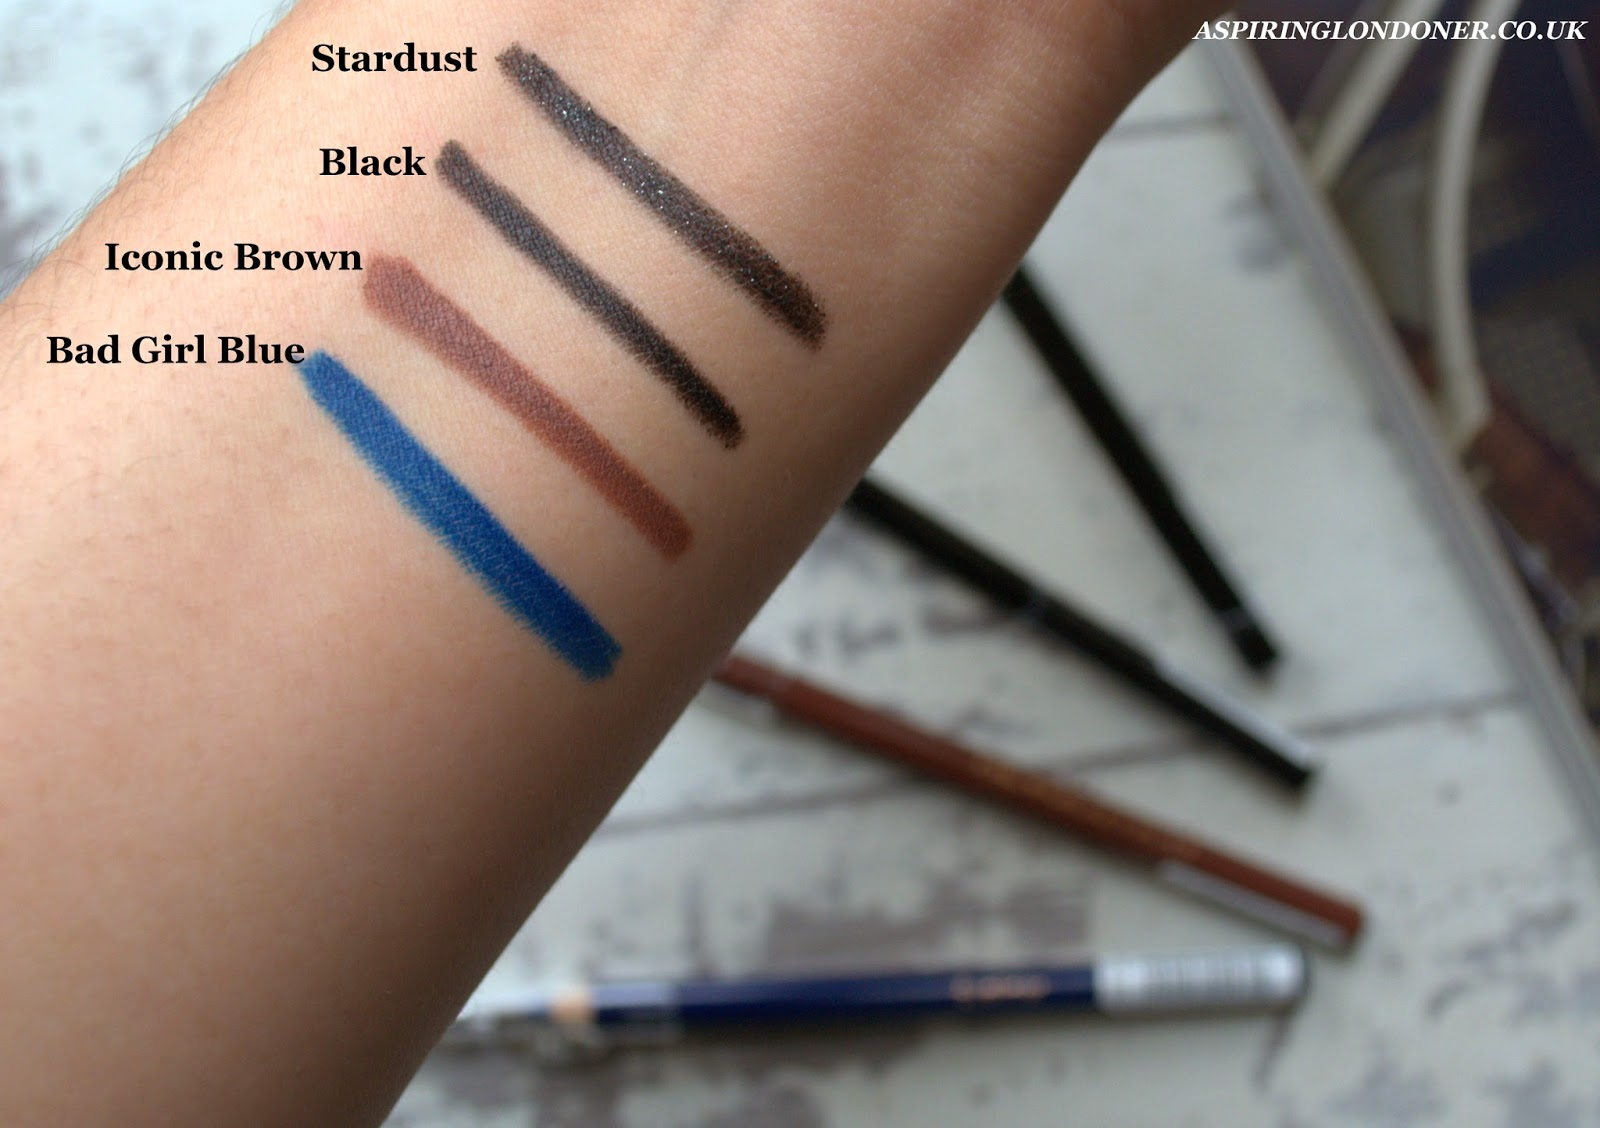 Makeup Revolution Amazing Eyeliner Swatches - Aspiring Londoner